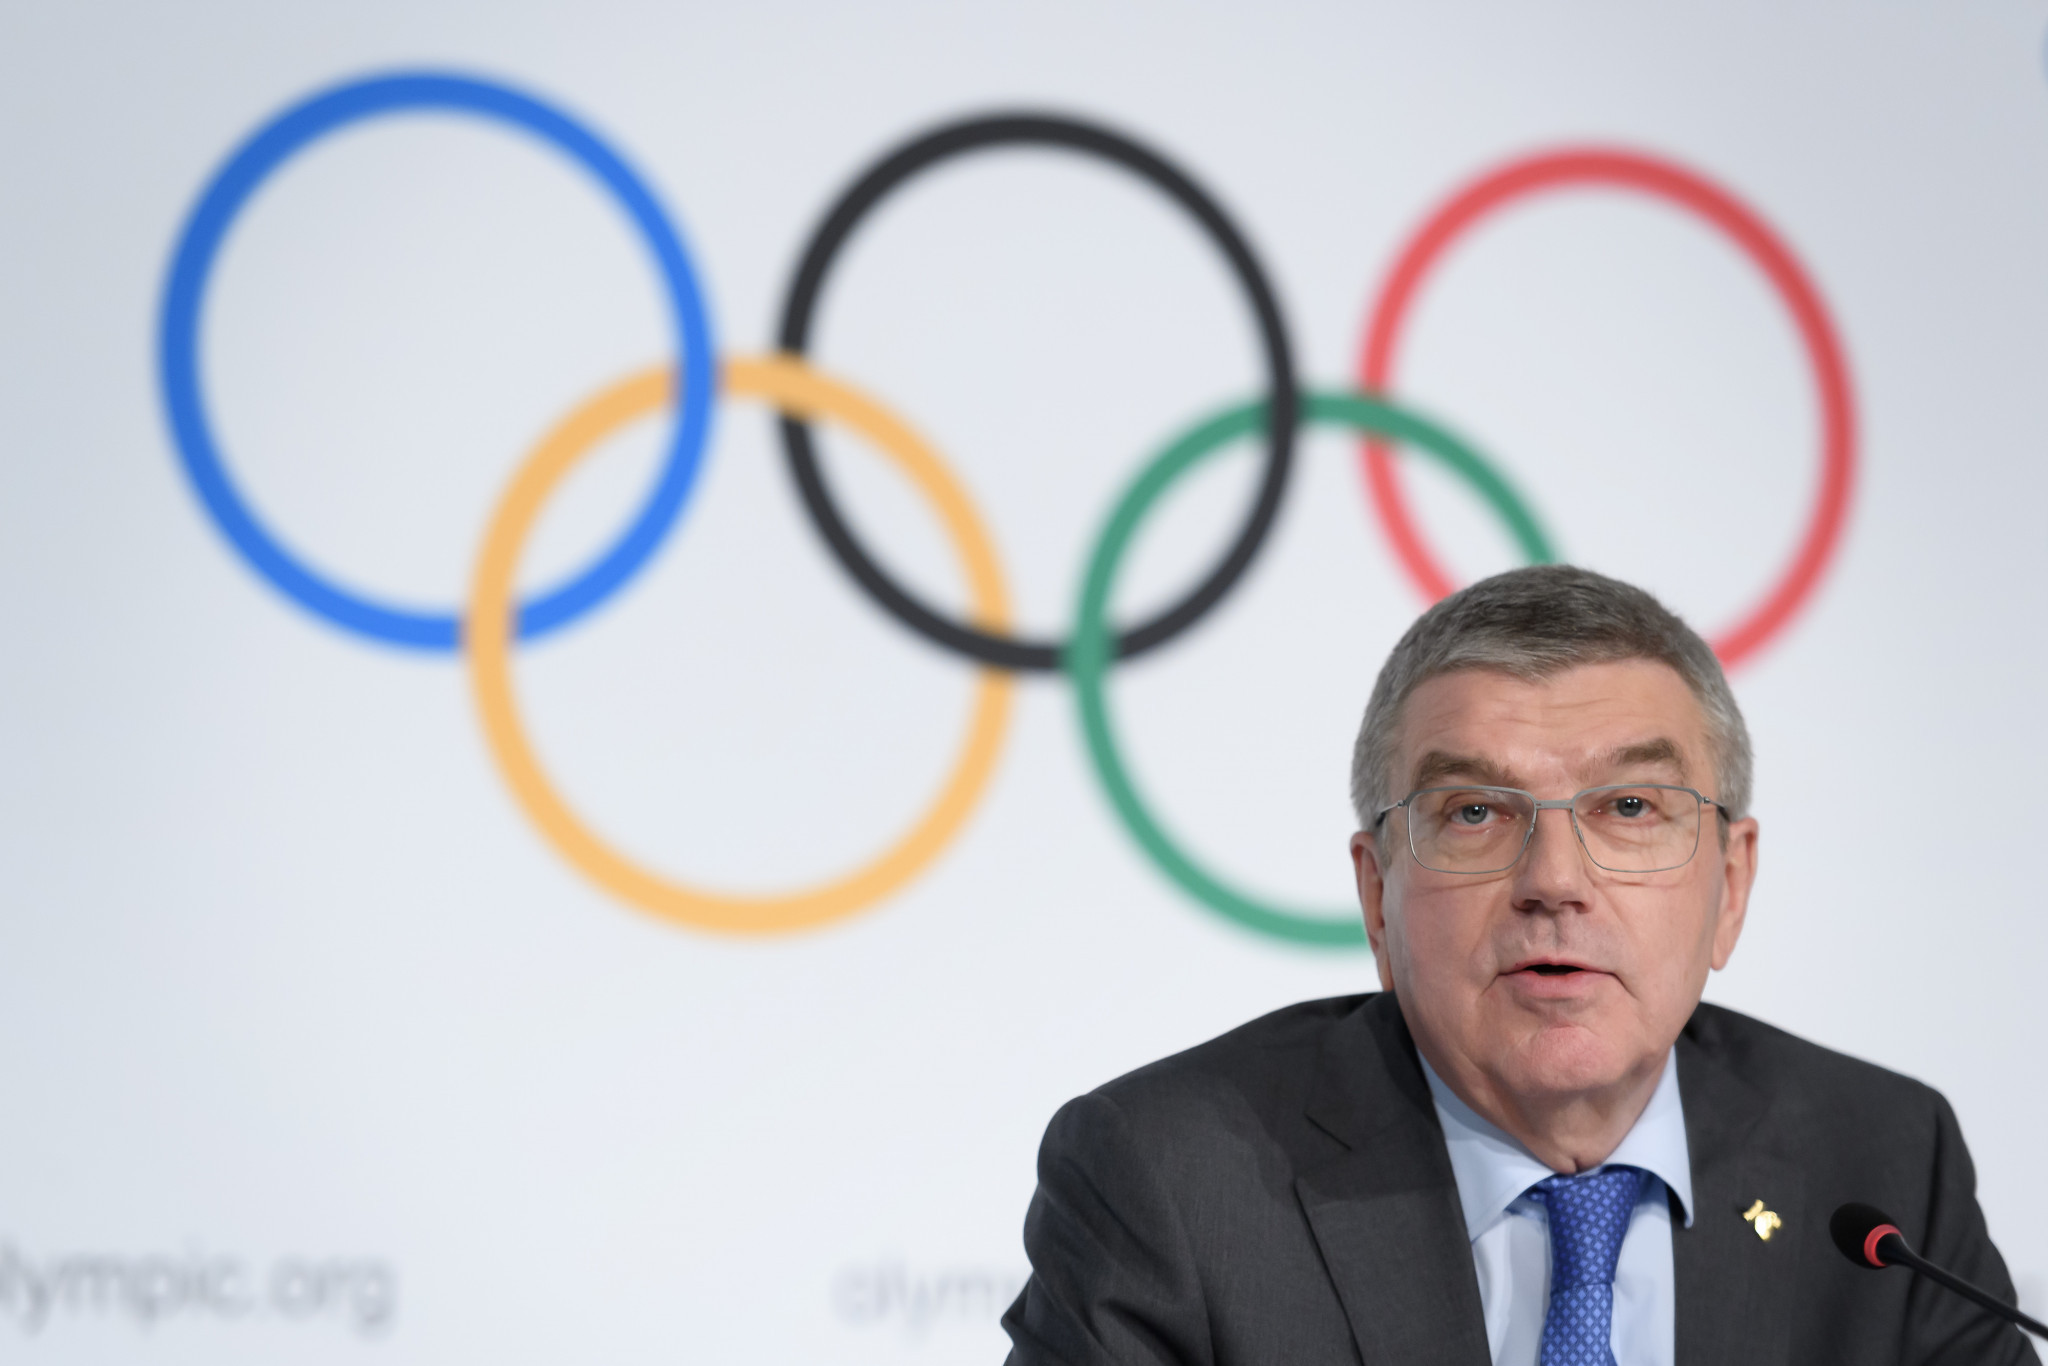 IOC President Thomas Bach warned against podium protests at Tokyo 2020 in his New Year message ©Getty Images